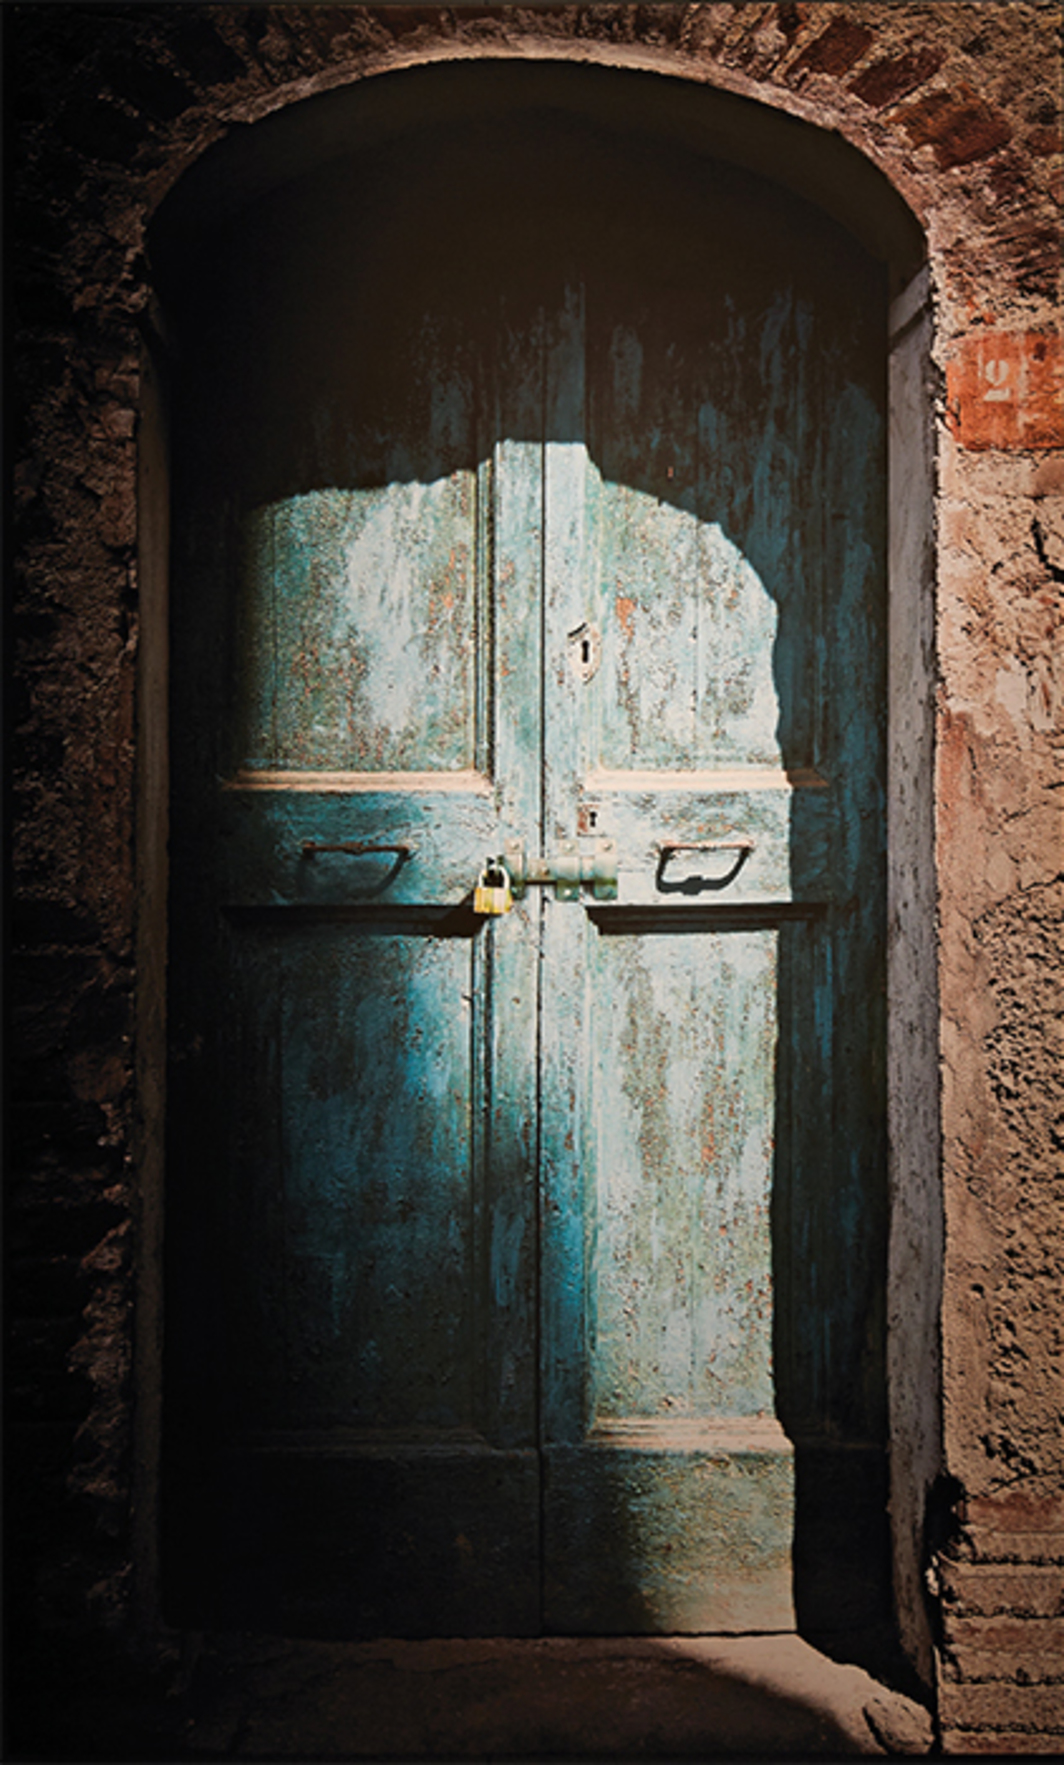 Abbas Kiarostami, Doors Without Keys (detail), 2015, fifty digital prints on canvas, audio, dimensions variable.